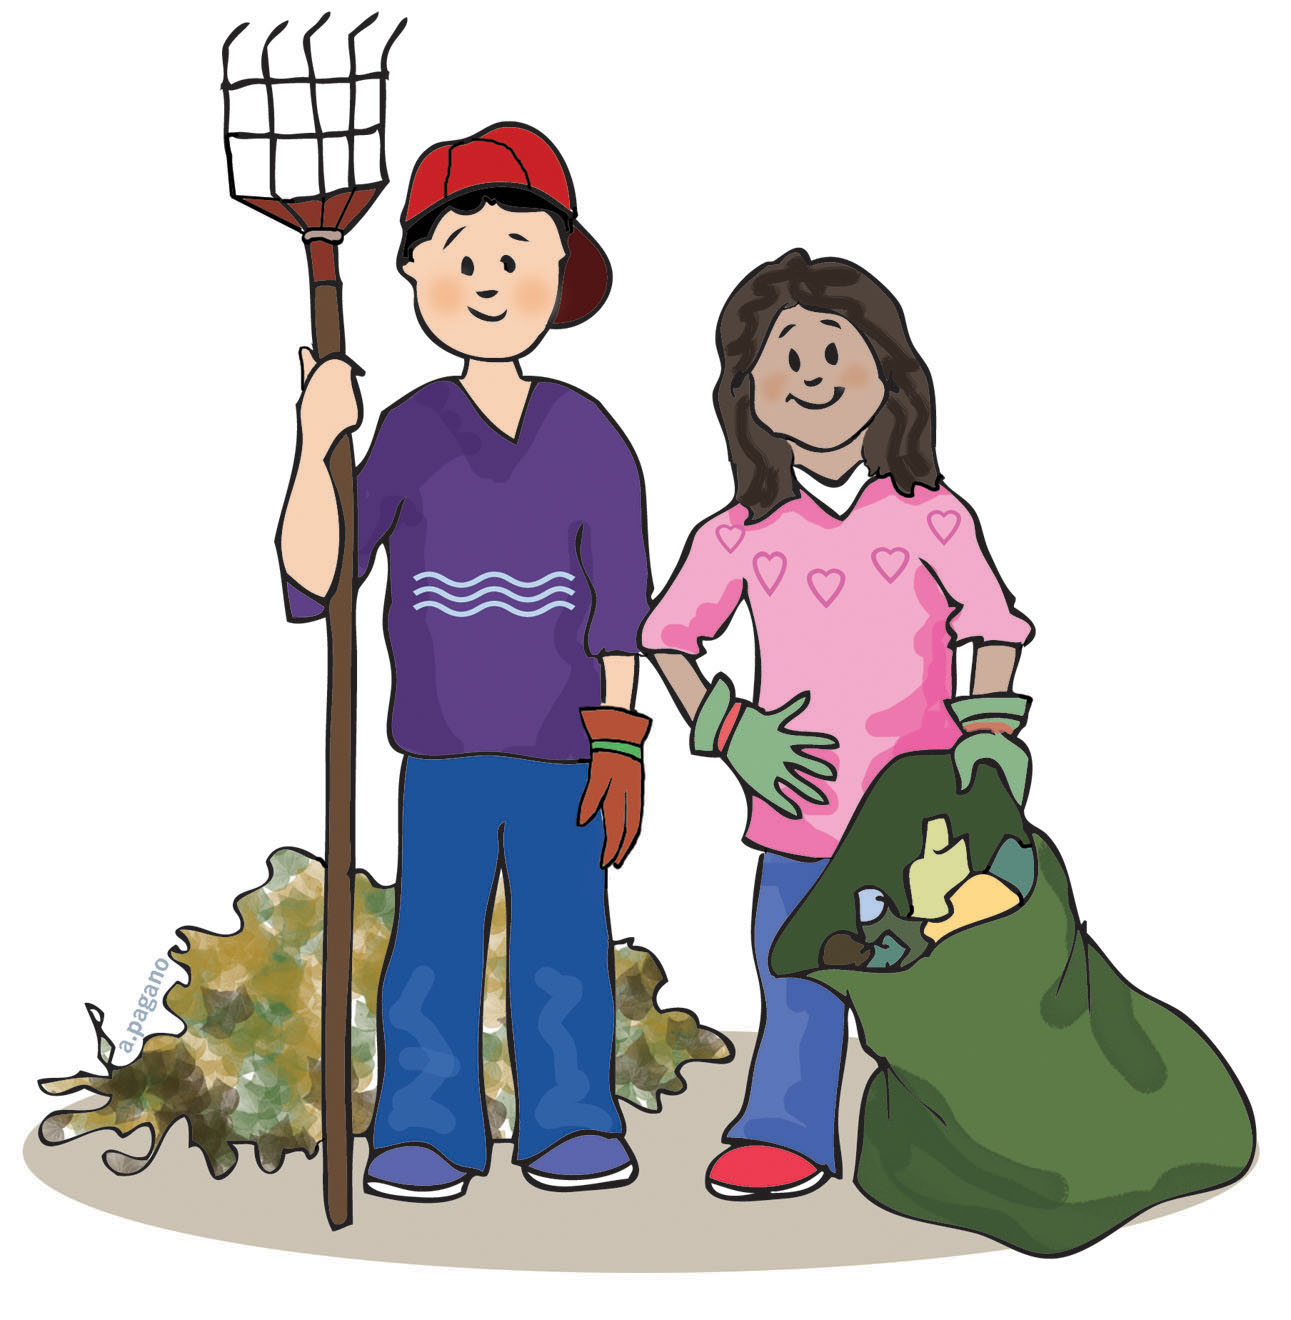 Clean clipart worker. Free preschooler cleaning cliparts